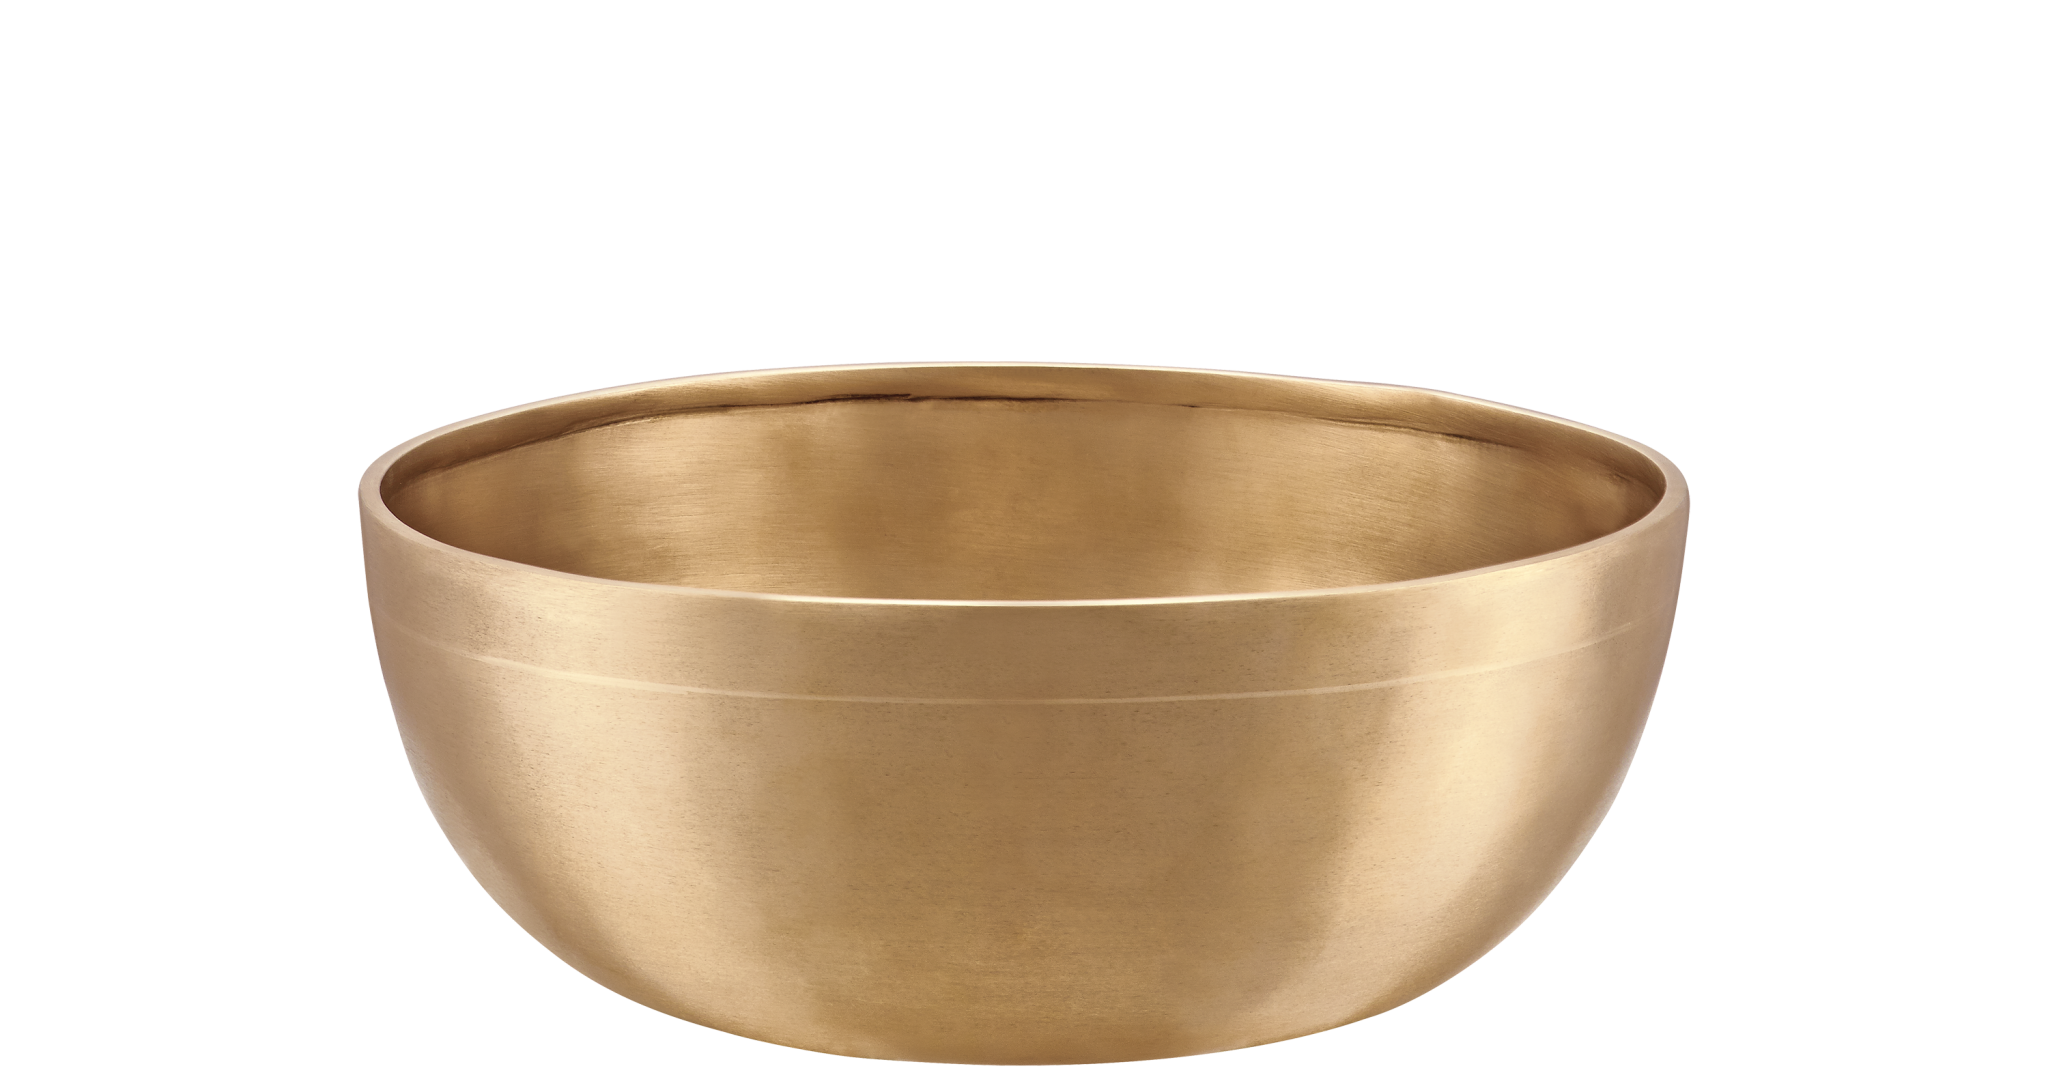 Meinl Meinl Energy TherapySinging Bowl 7.8in